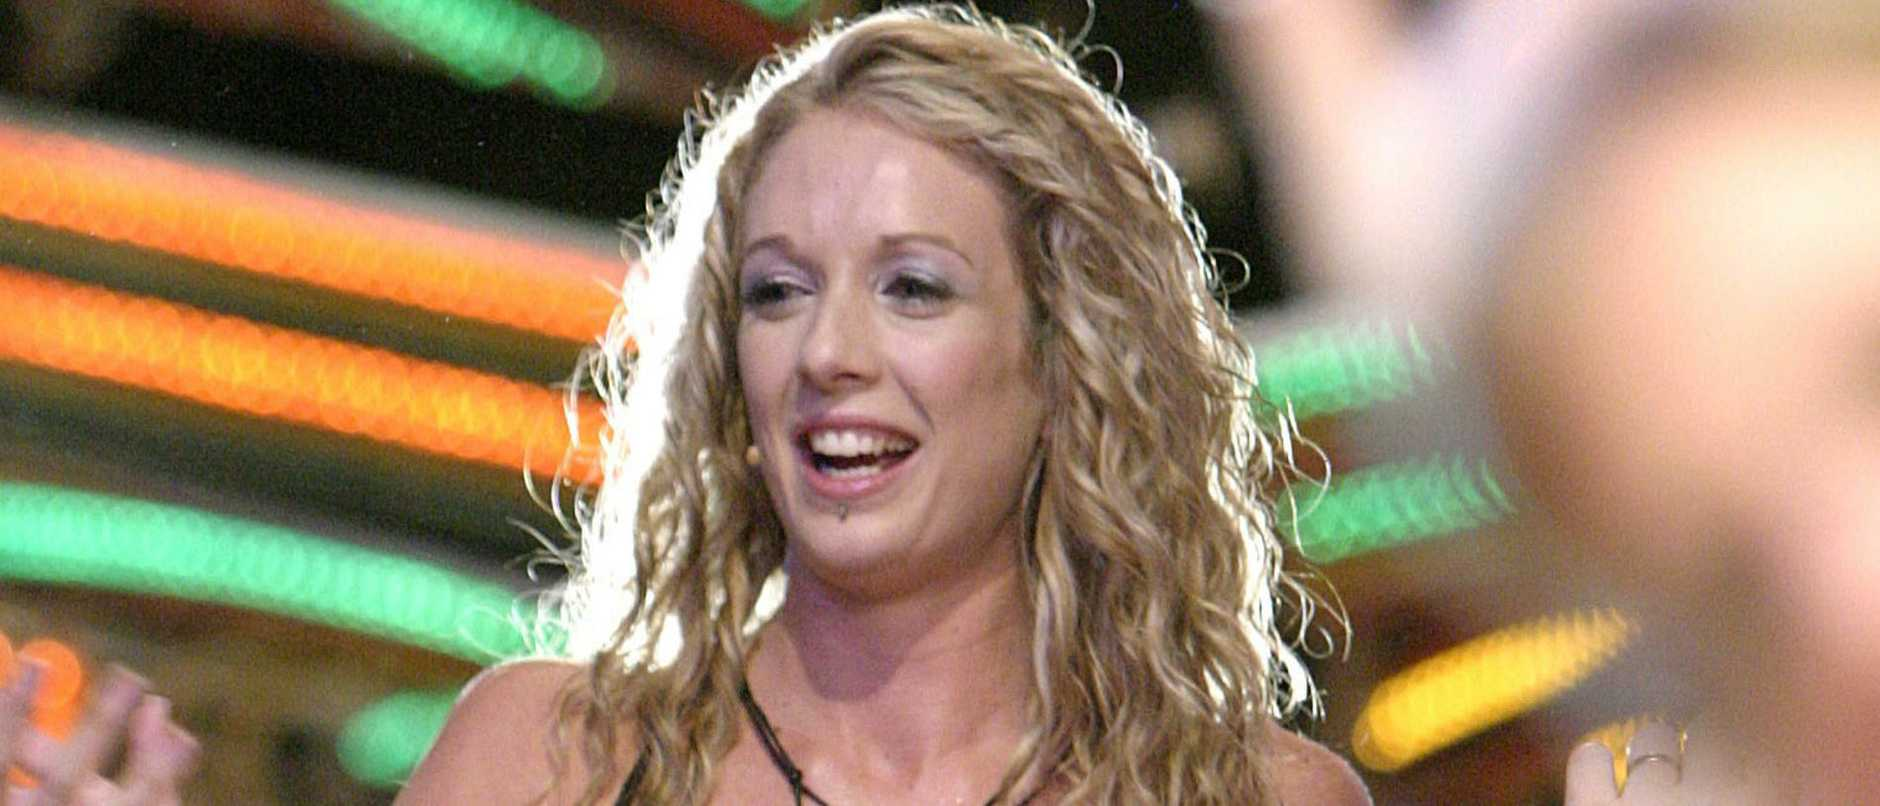 JULY 4, 2004: Reality TV show contestant Bree on the